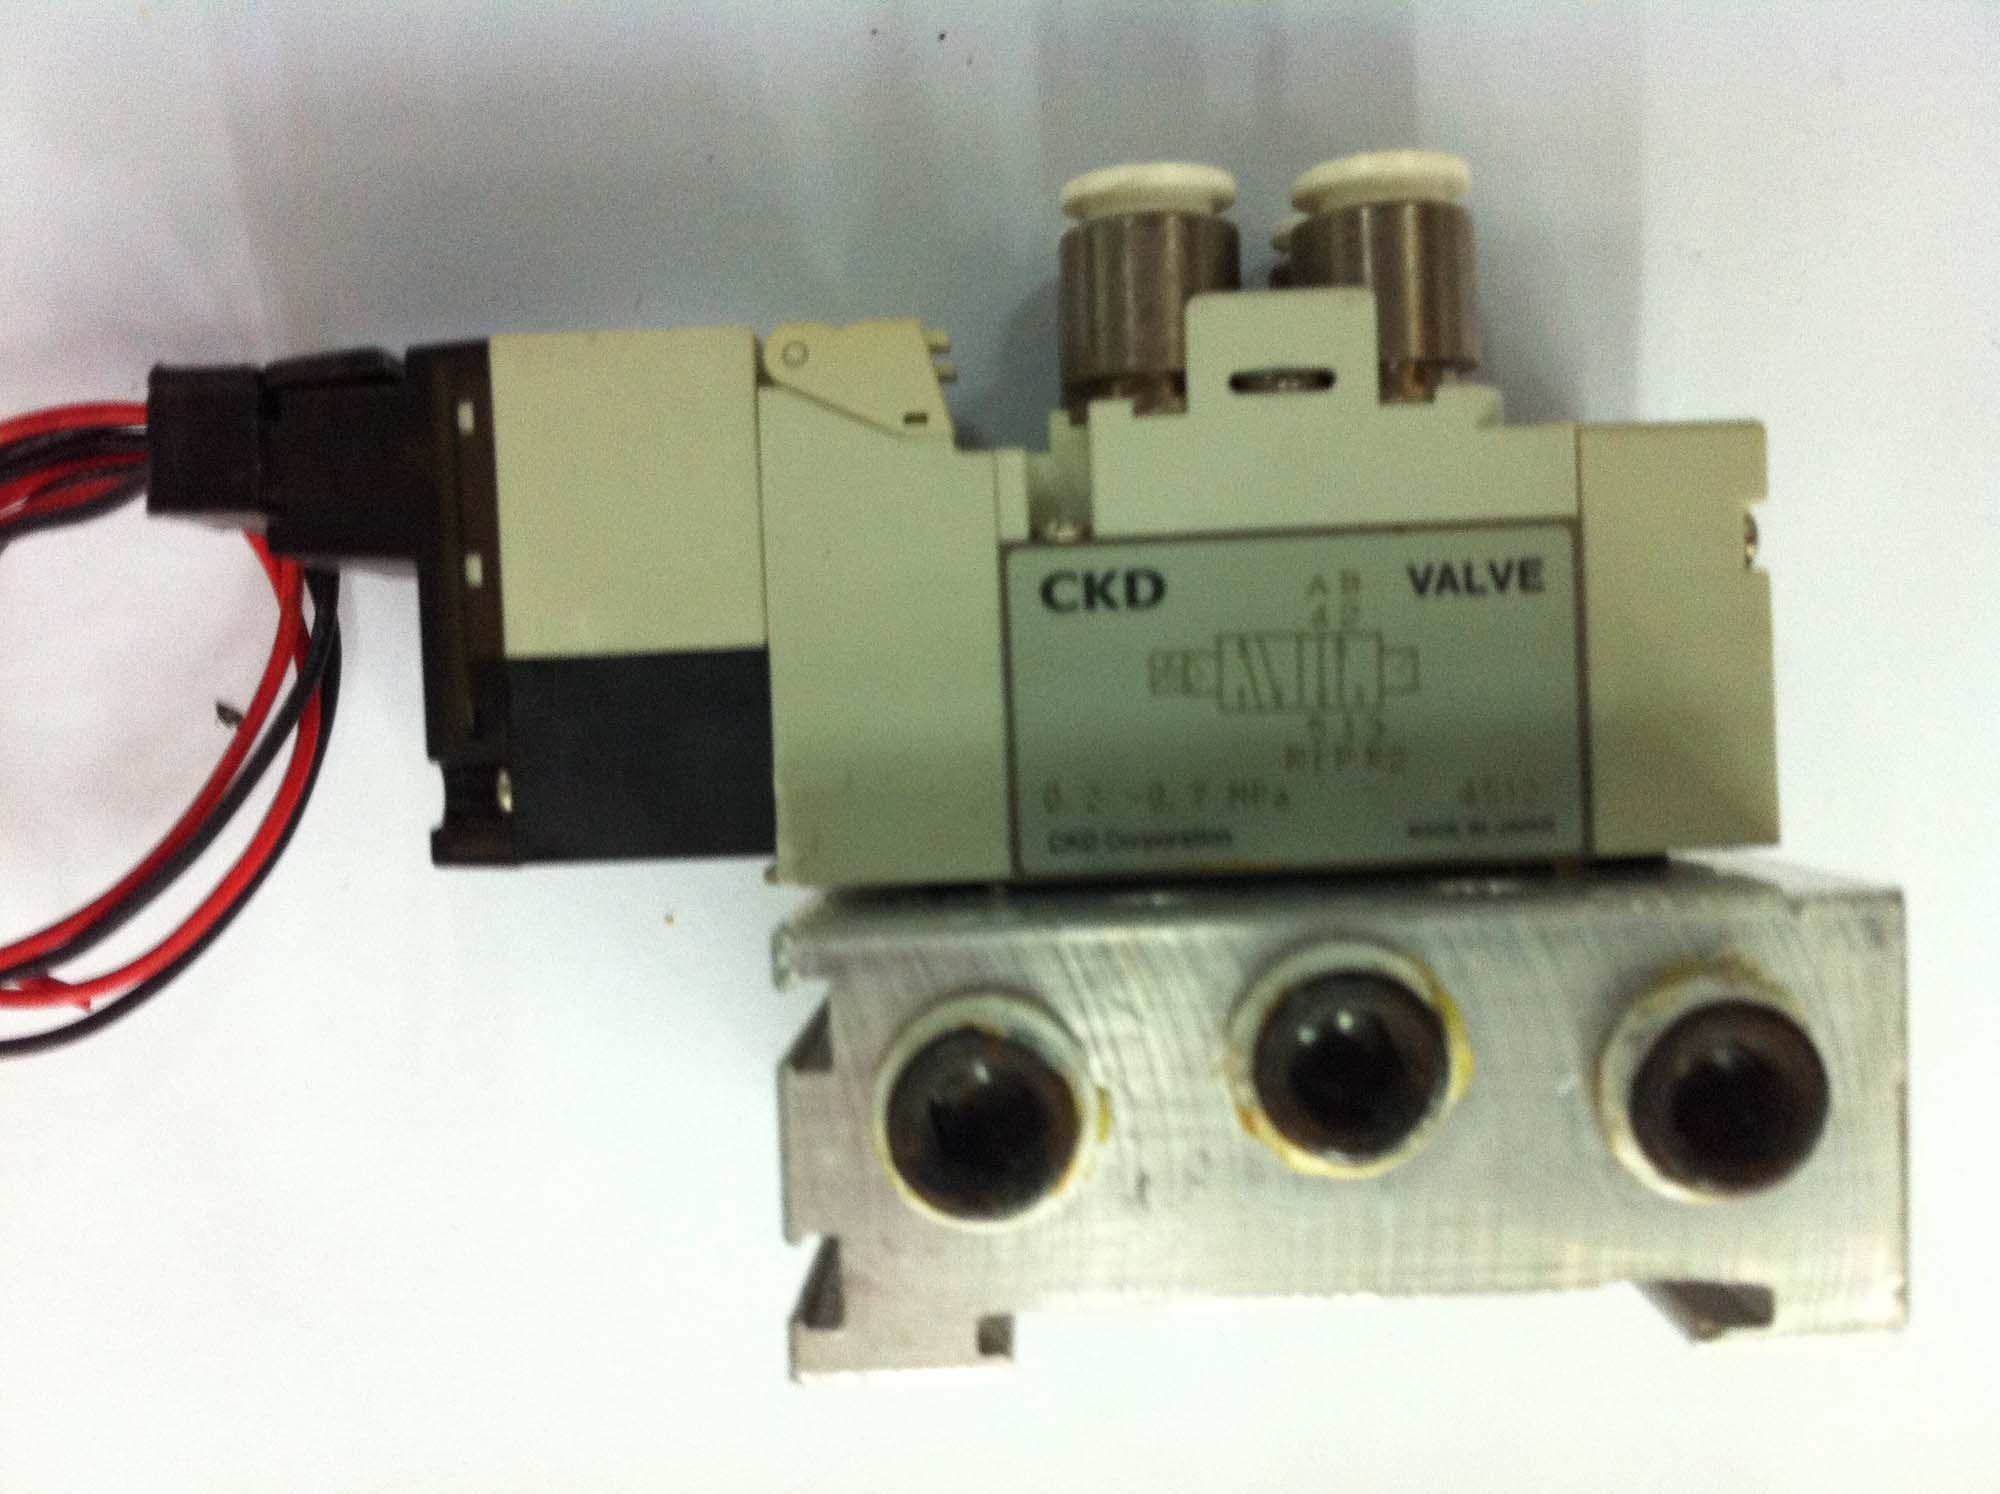 The performance of Japanese CKD4GA119-E23F disassemble parts complete electric control valve